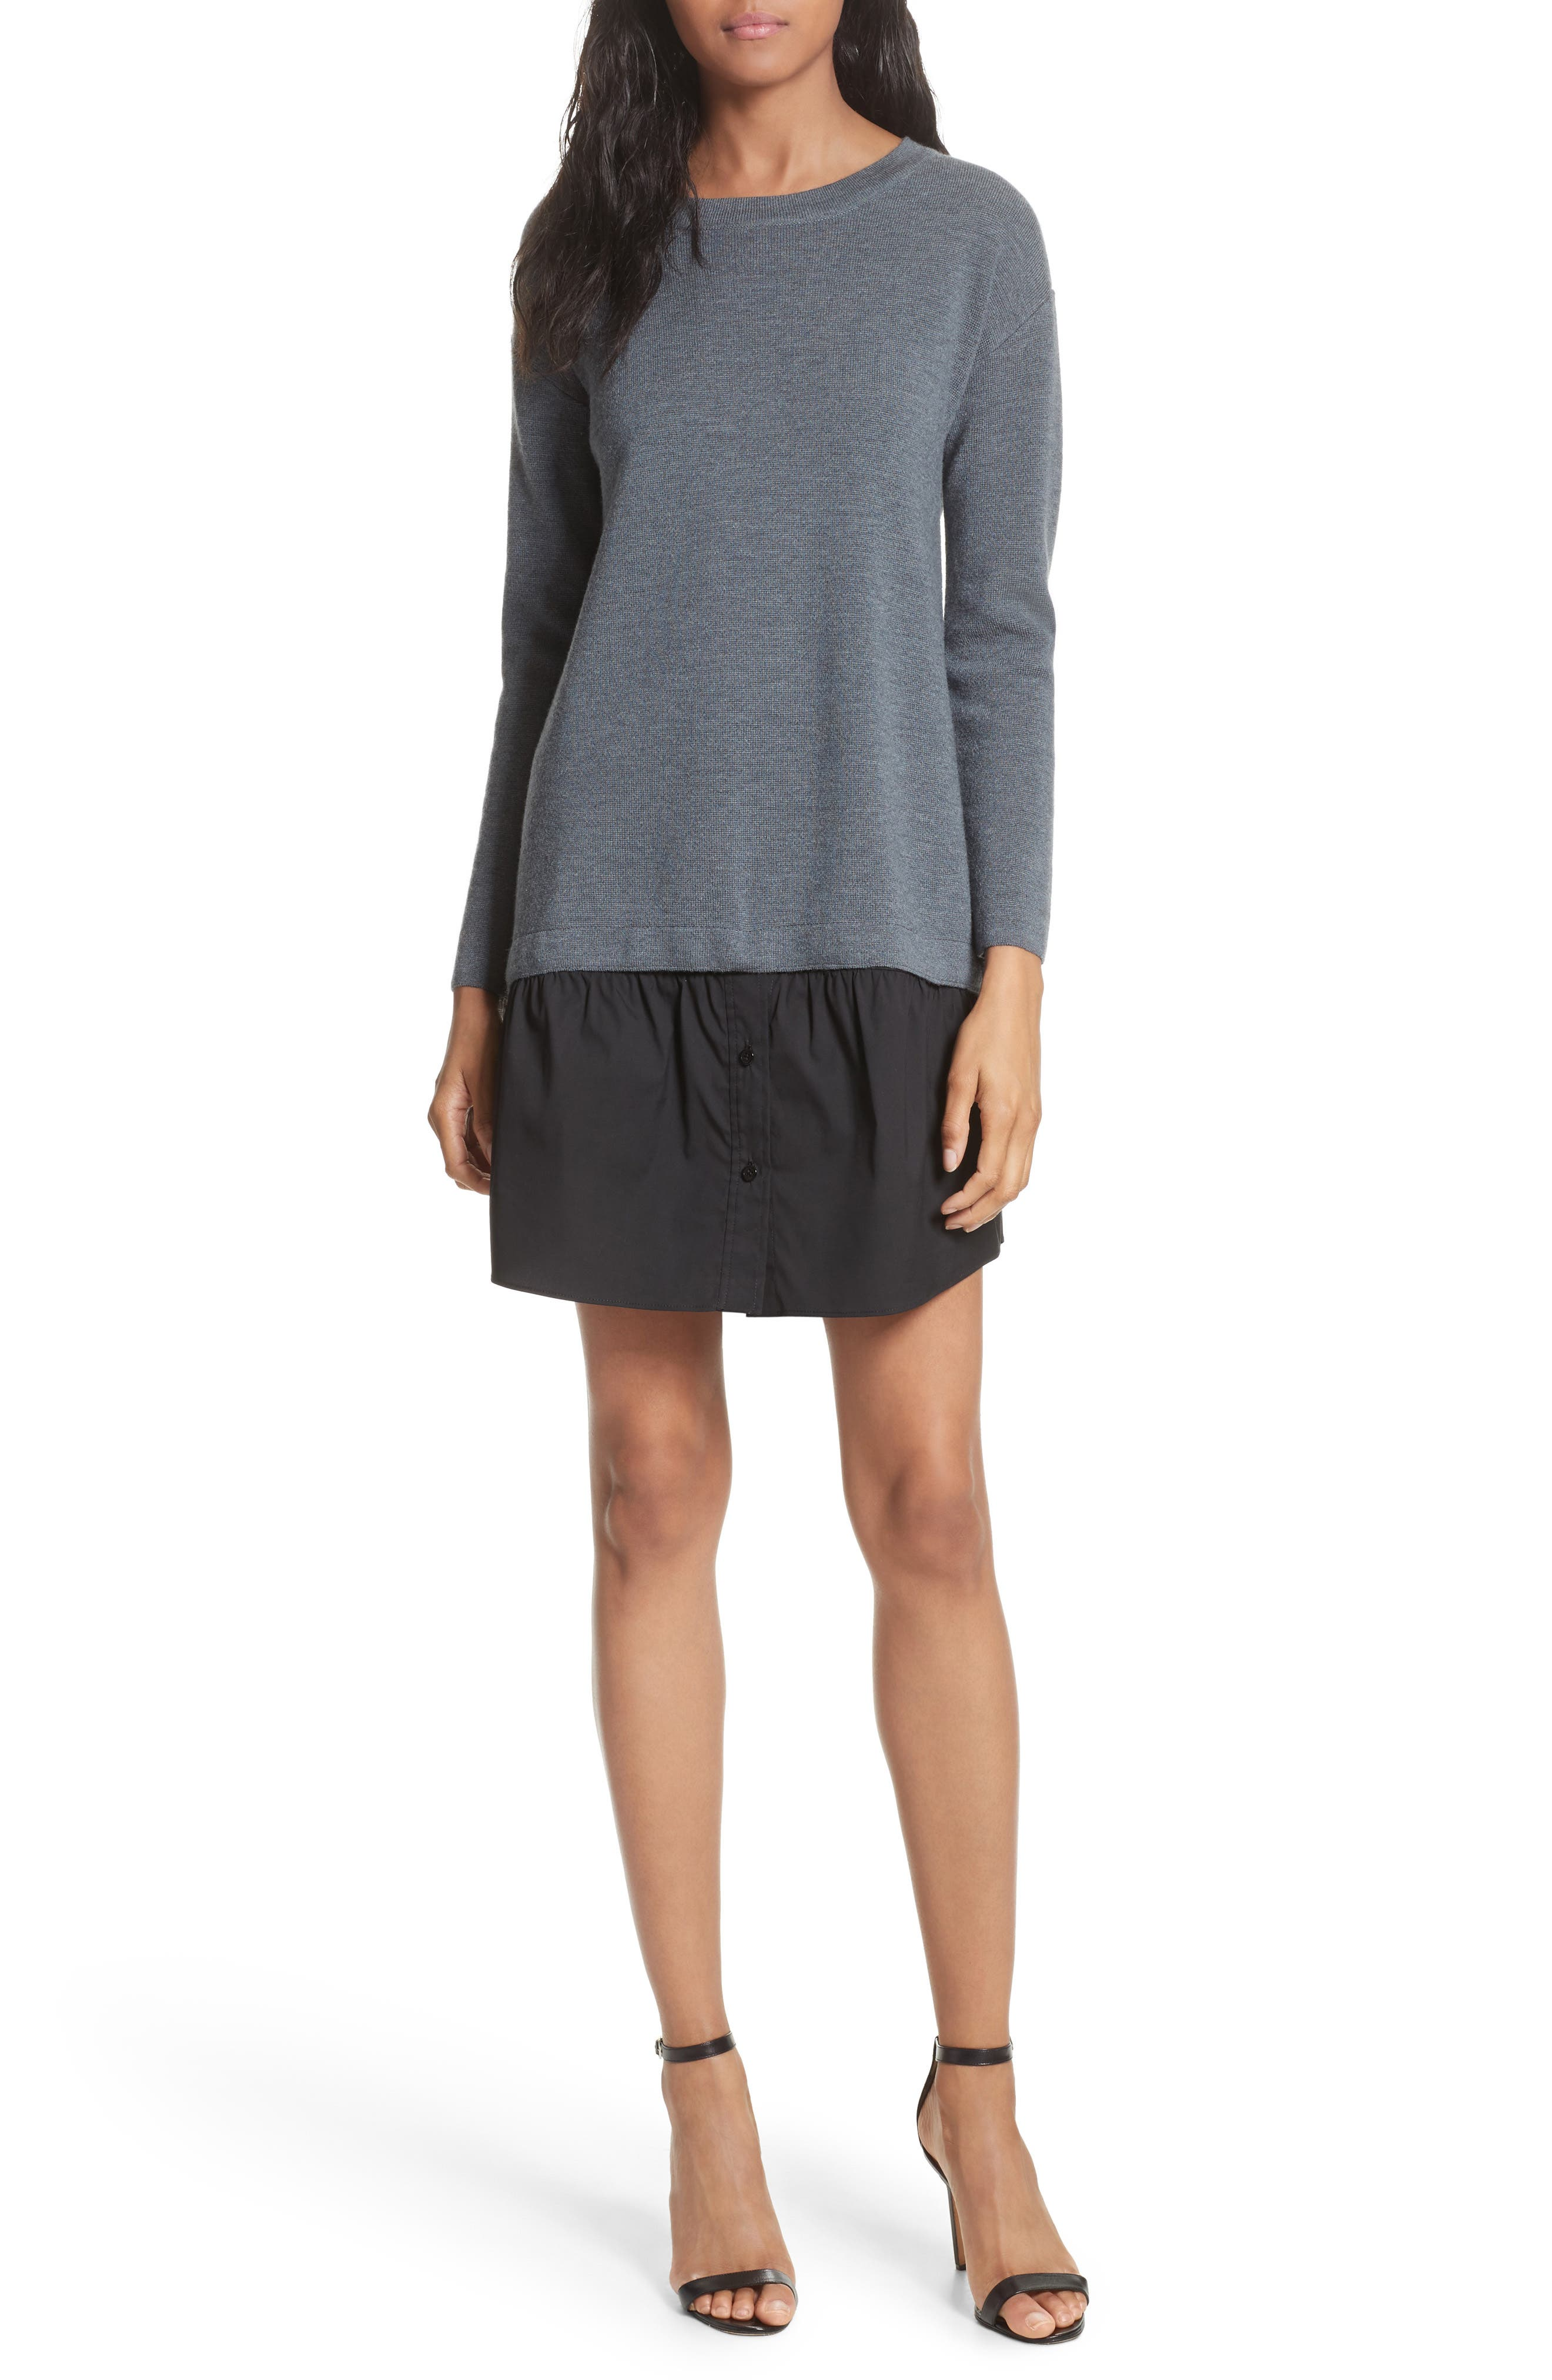 2-in-1 Sweater Dress,                             Main thumbnail 1, color,